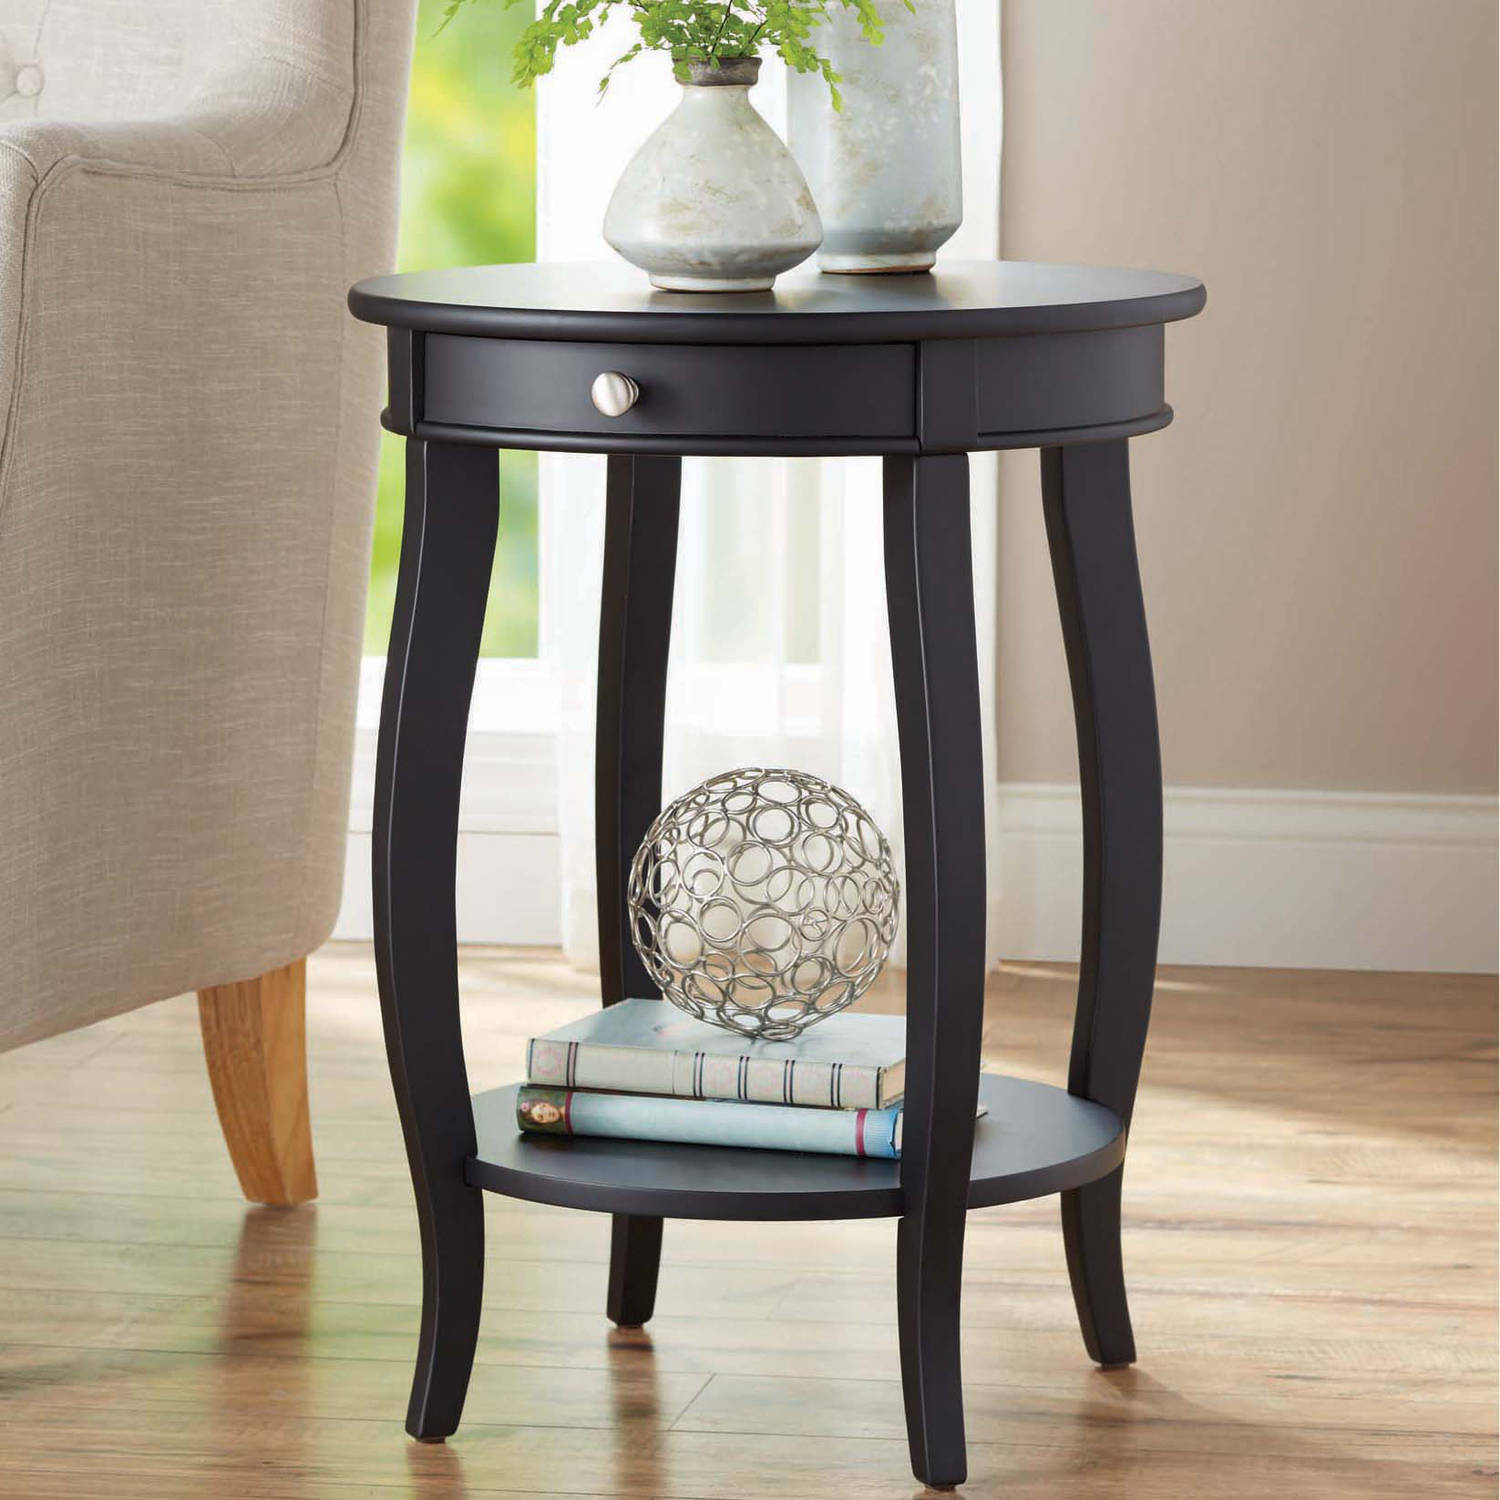 dining room small round accent table fresh inside better homes gardens with drawer multiple mirrored ashley furniture living wisteria tiffany style lamps kitchen barn door